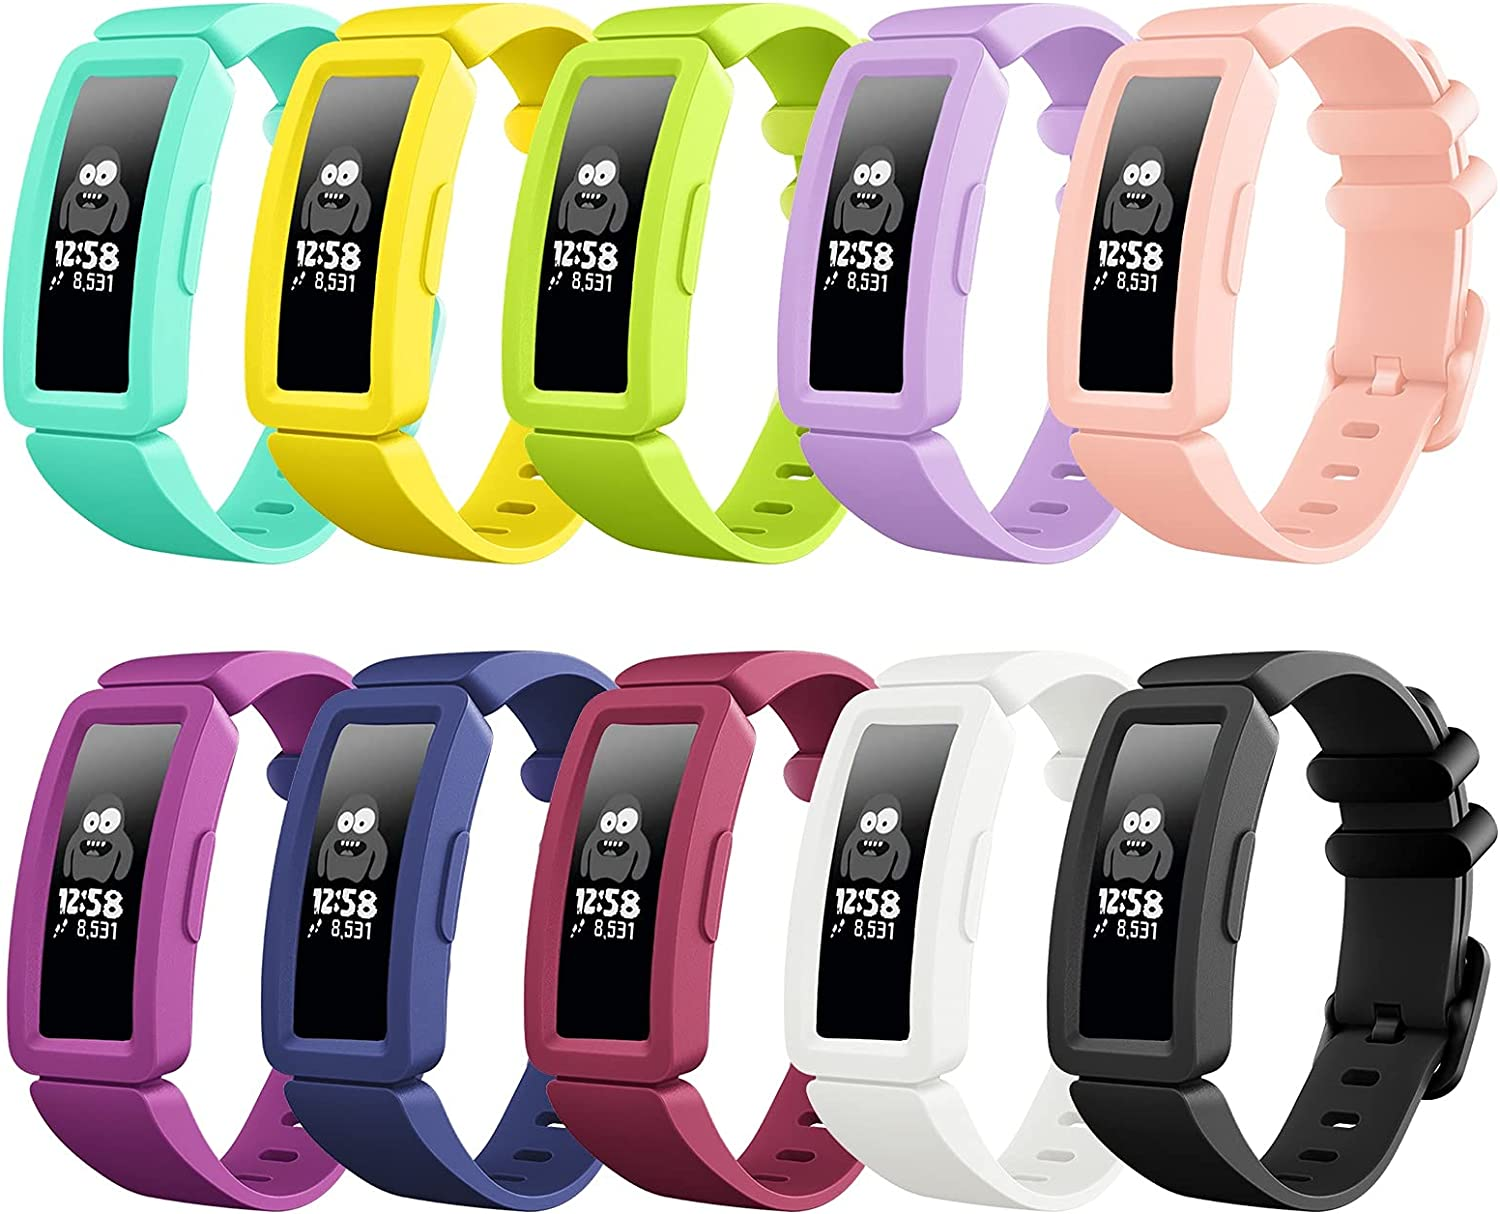 Vanet Bands Compatible with Fitbit Ace 2 for Kids 6+, Soft Silicone Colorful Replacement Sports Wristbands for Fitbit Ace 2 for Kids Boys Girls